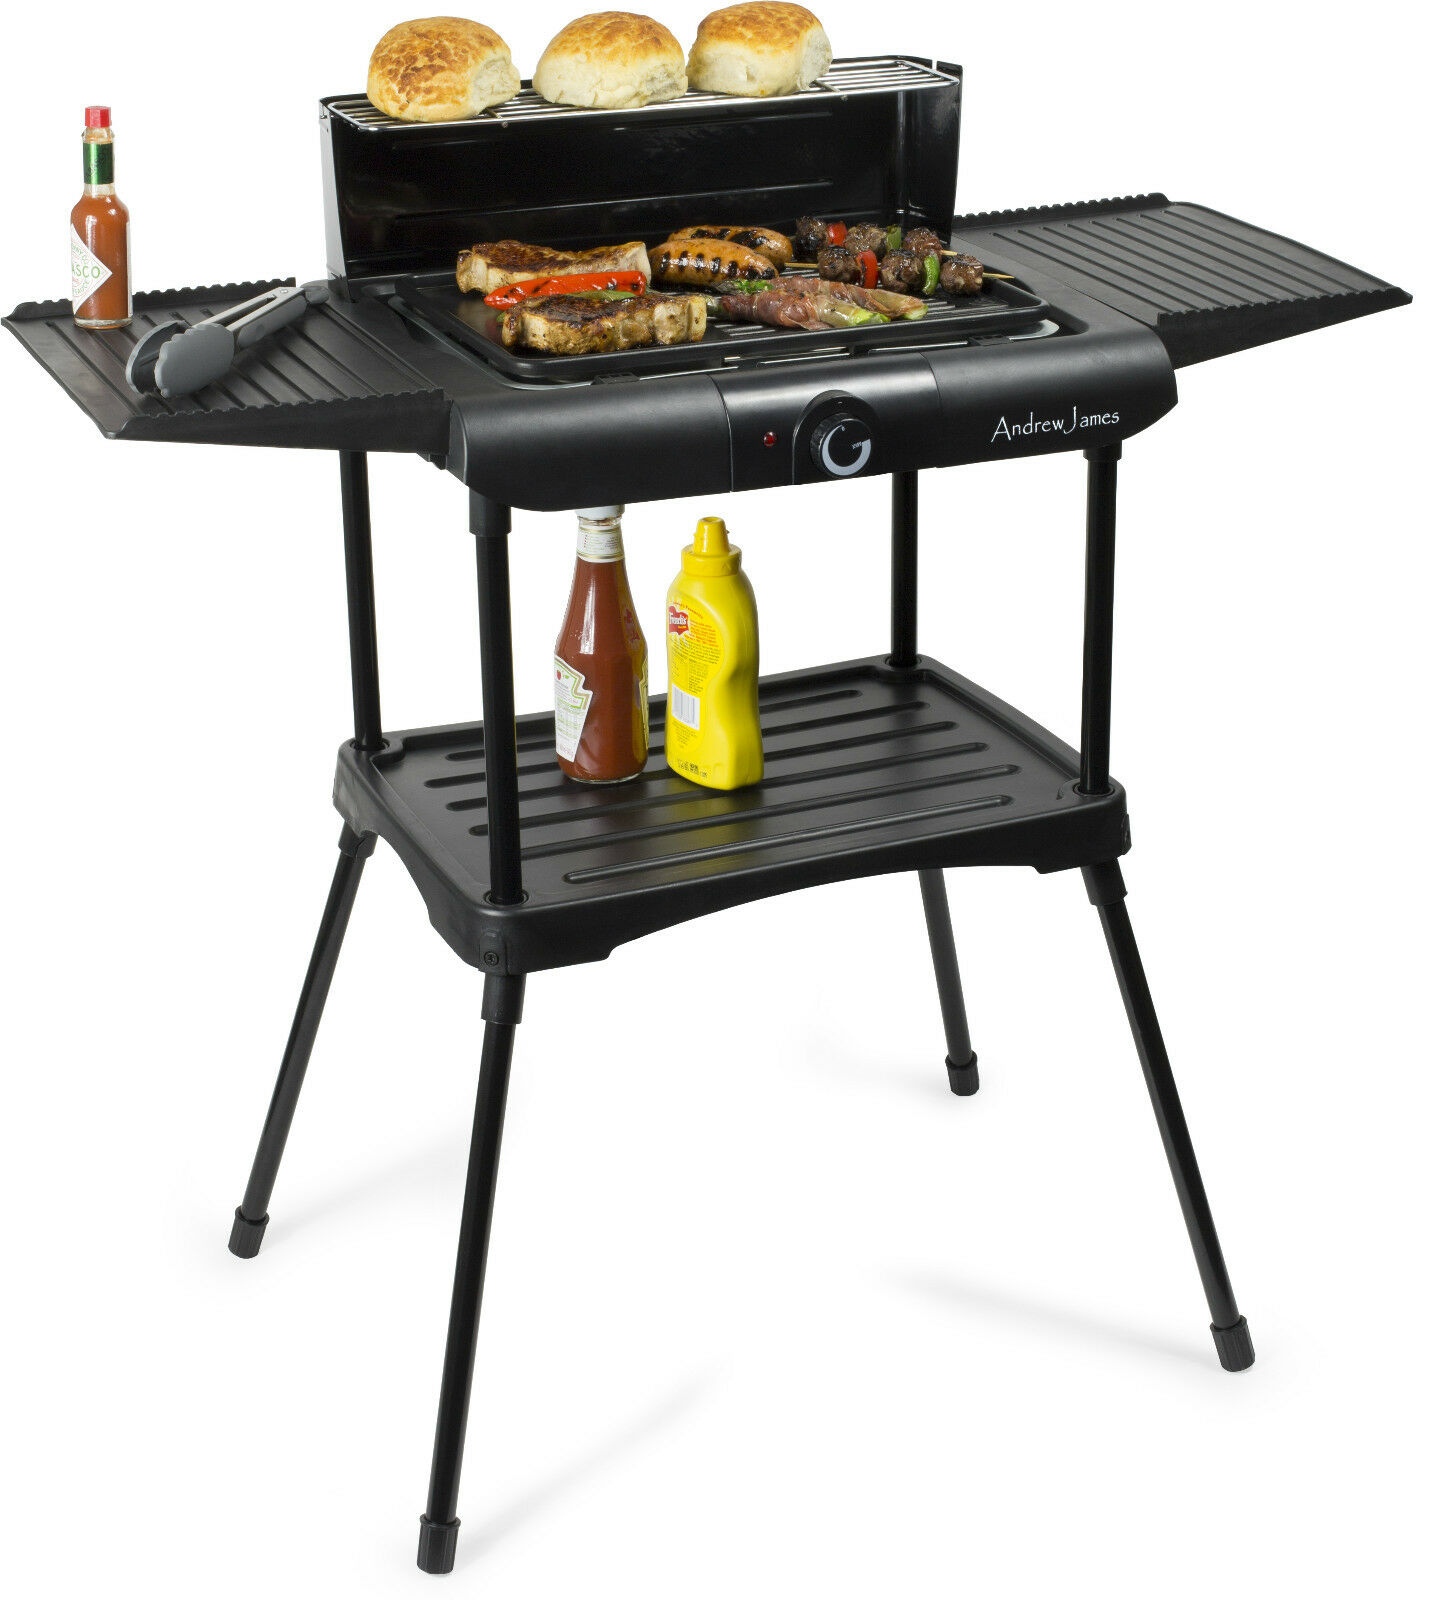 Outdoor Electric Barbecue Grills ~ Andrew james deluxe black electric bbq grill griddle